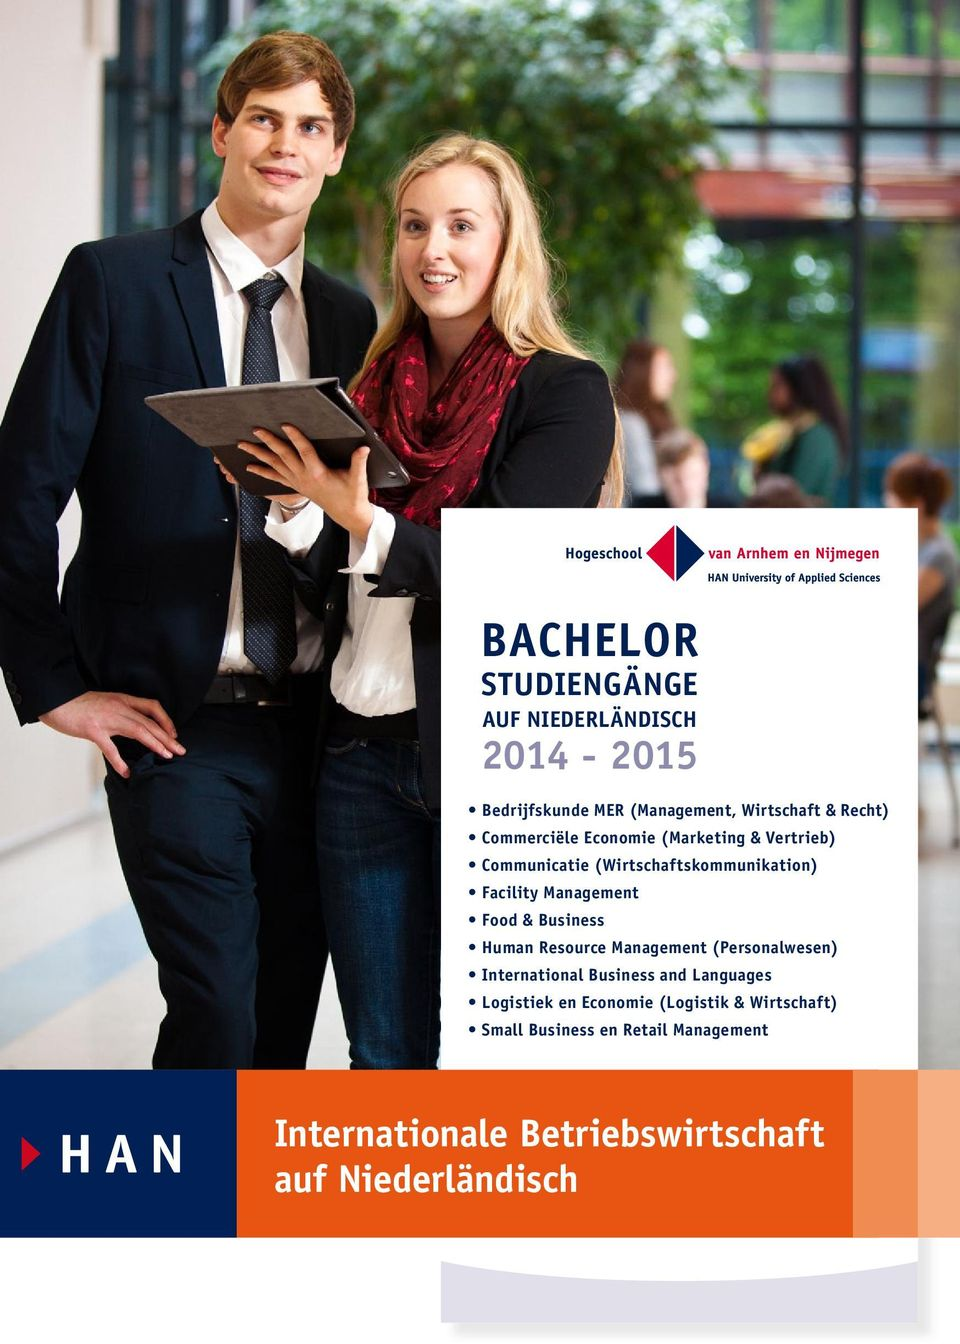 & Business Human Resource Management (Personalwesen) International Business and Languages Logistiek en